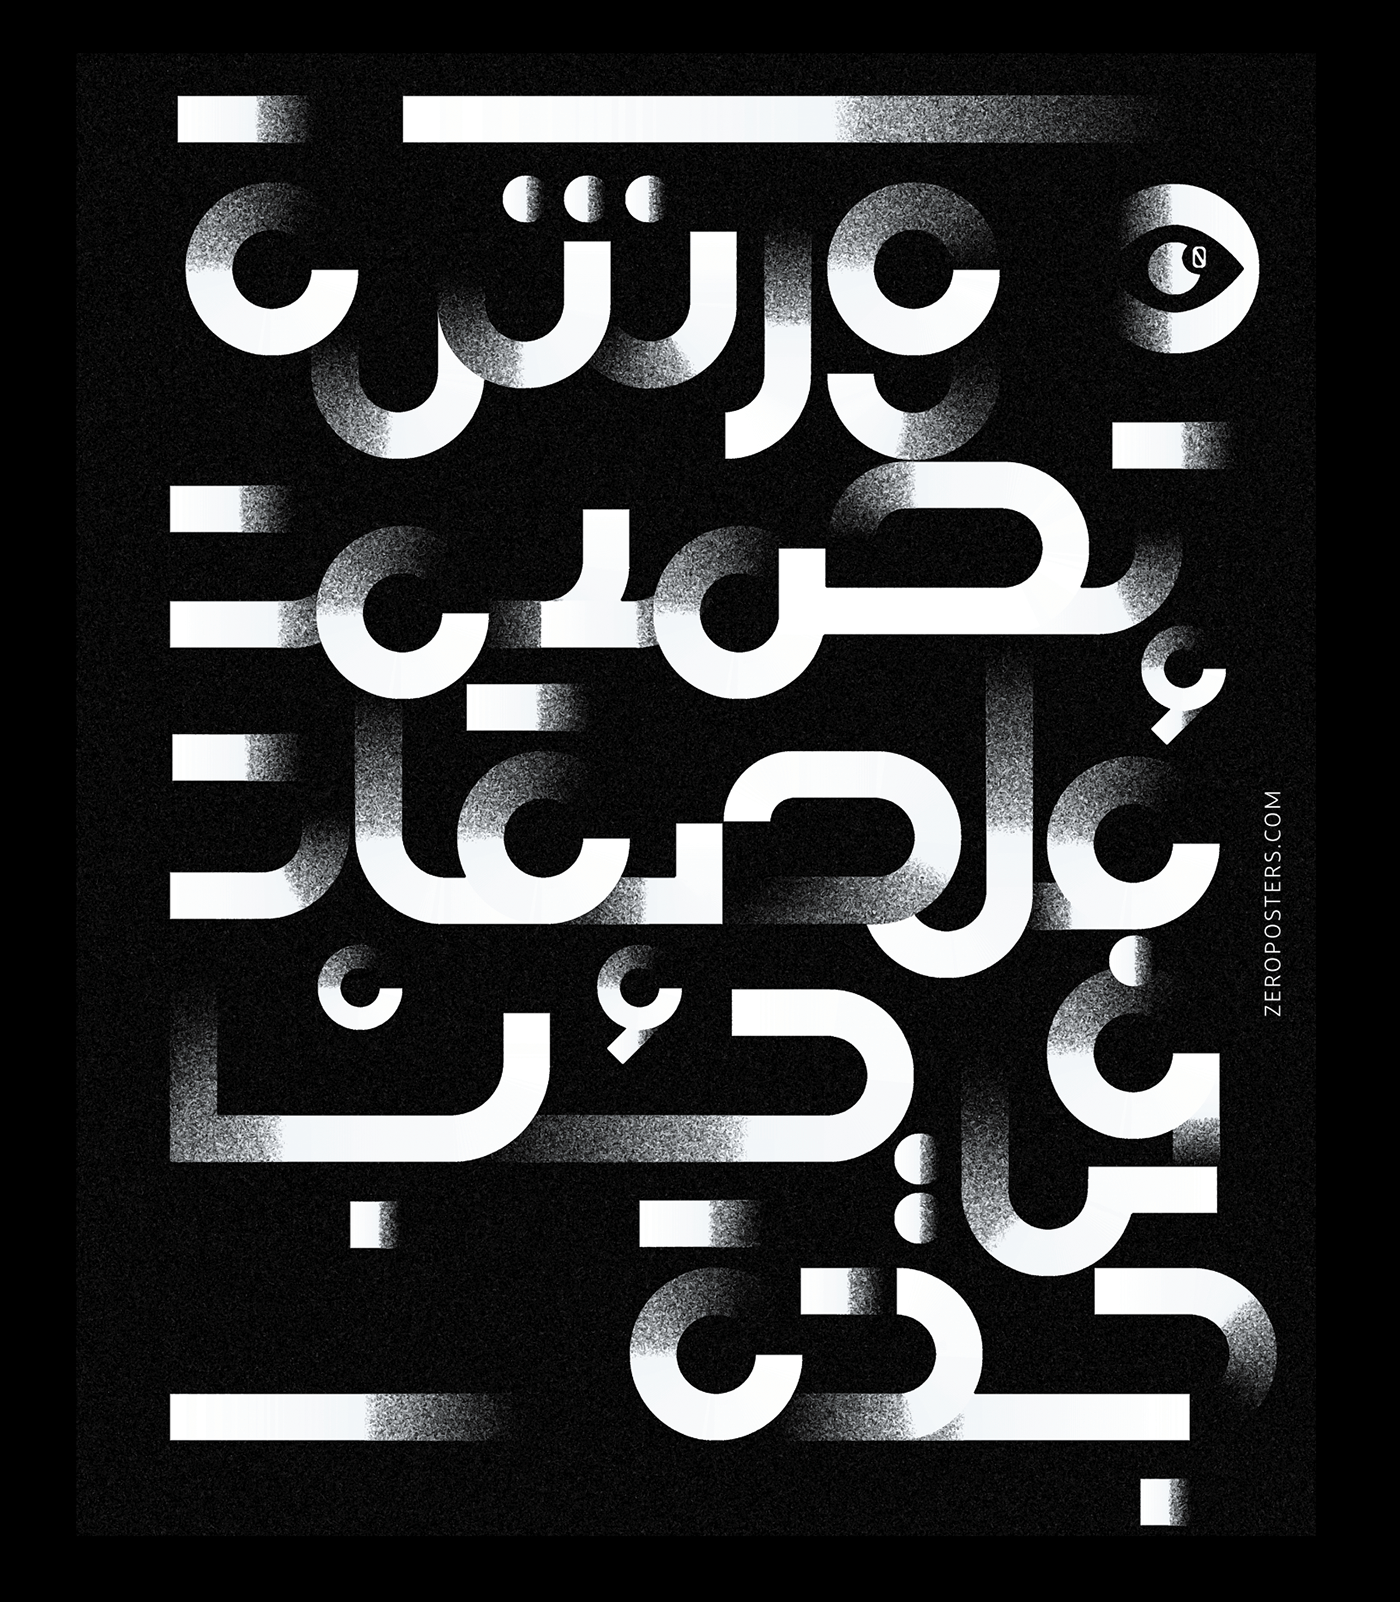 arabic gridsystem Layout lettering posters swiss type illustration typedesign typography   zero